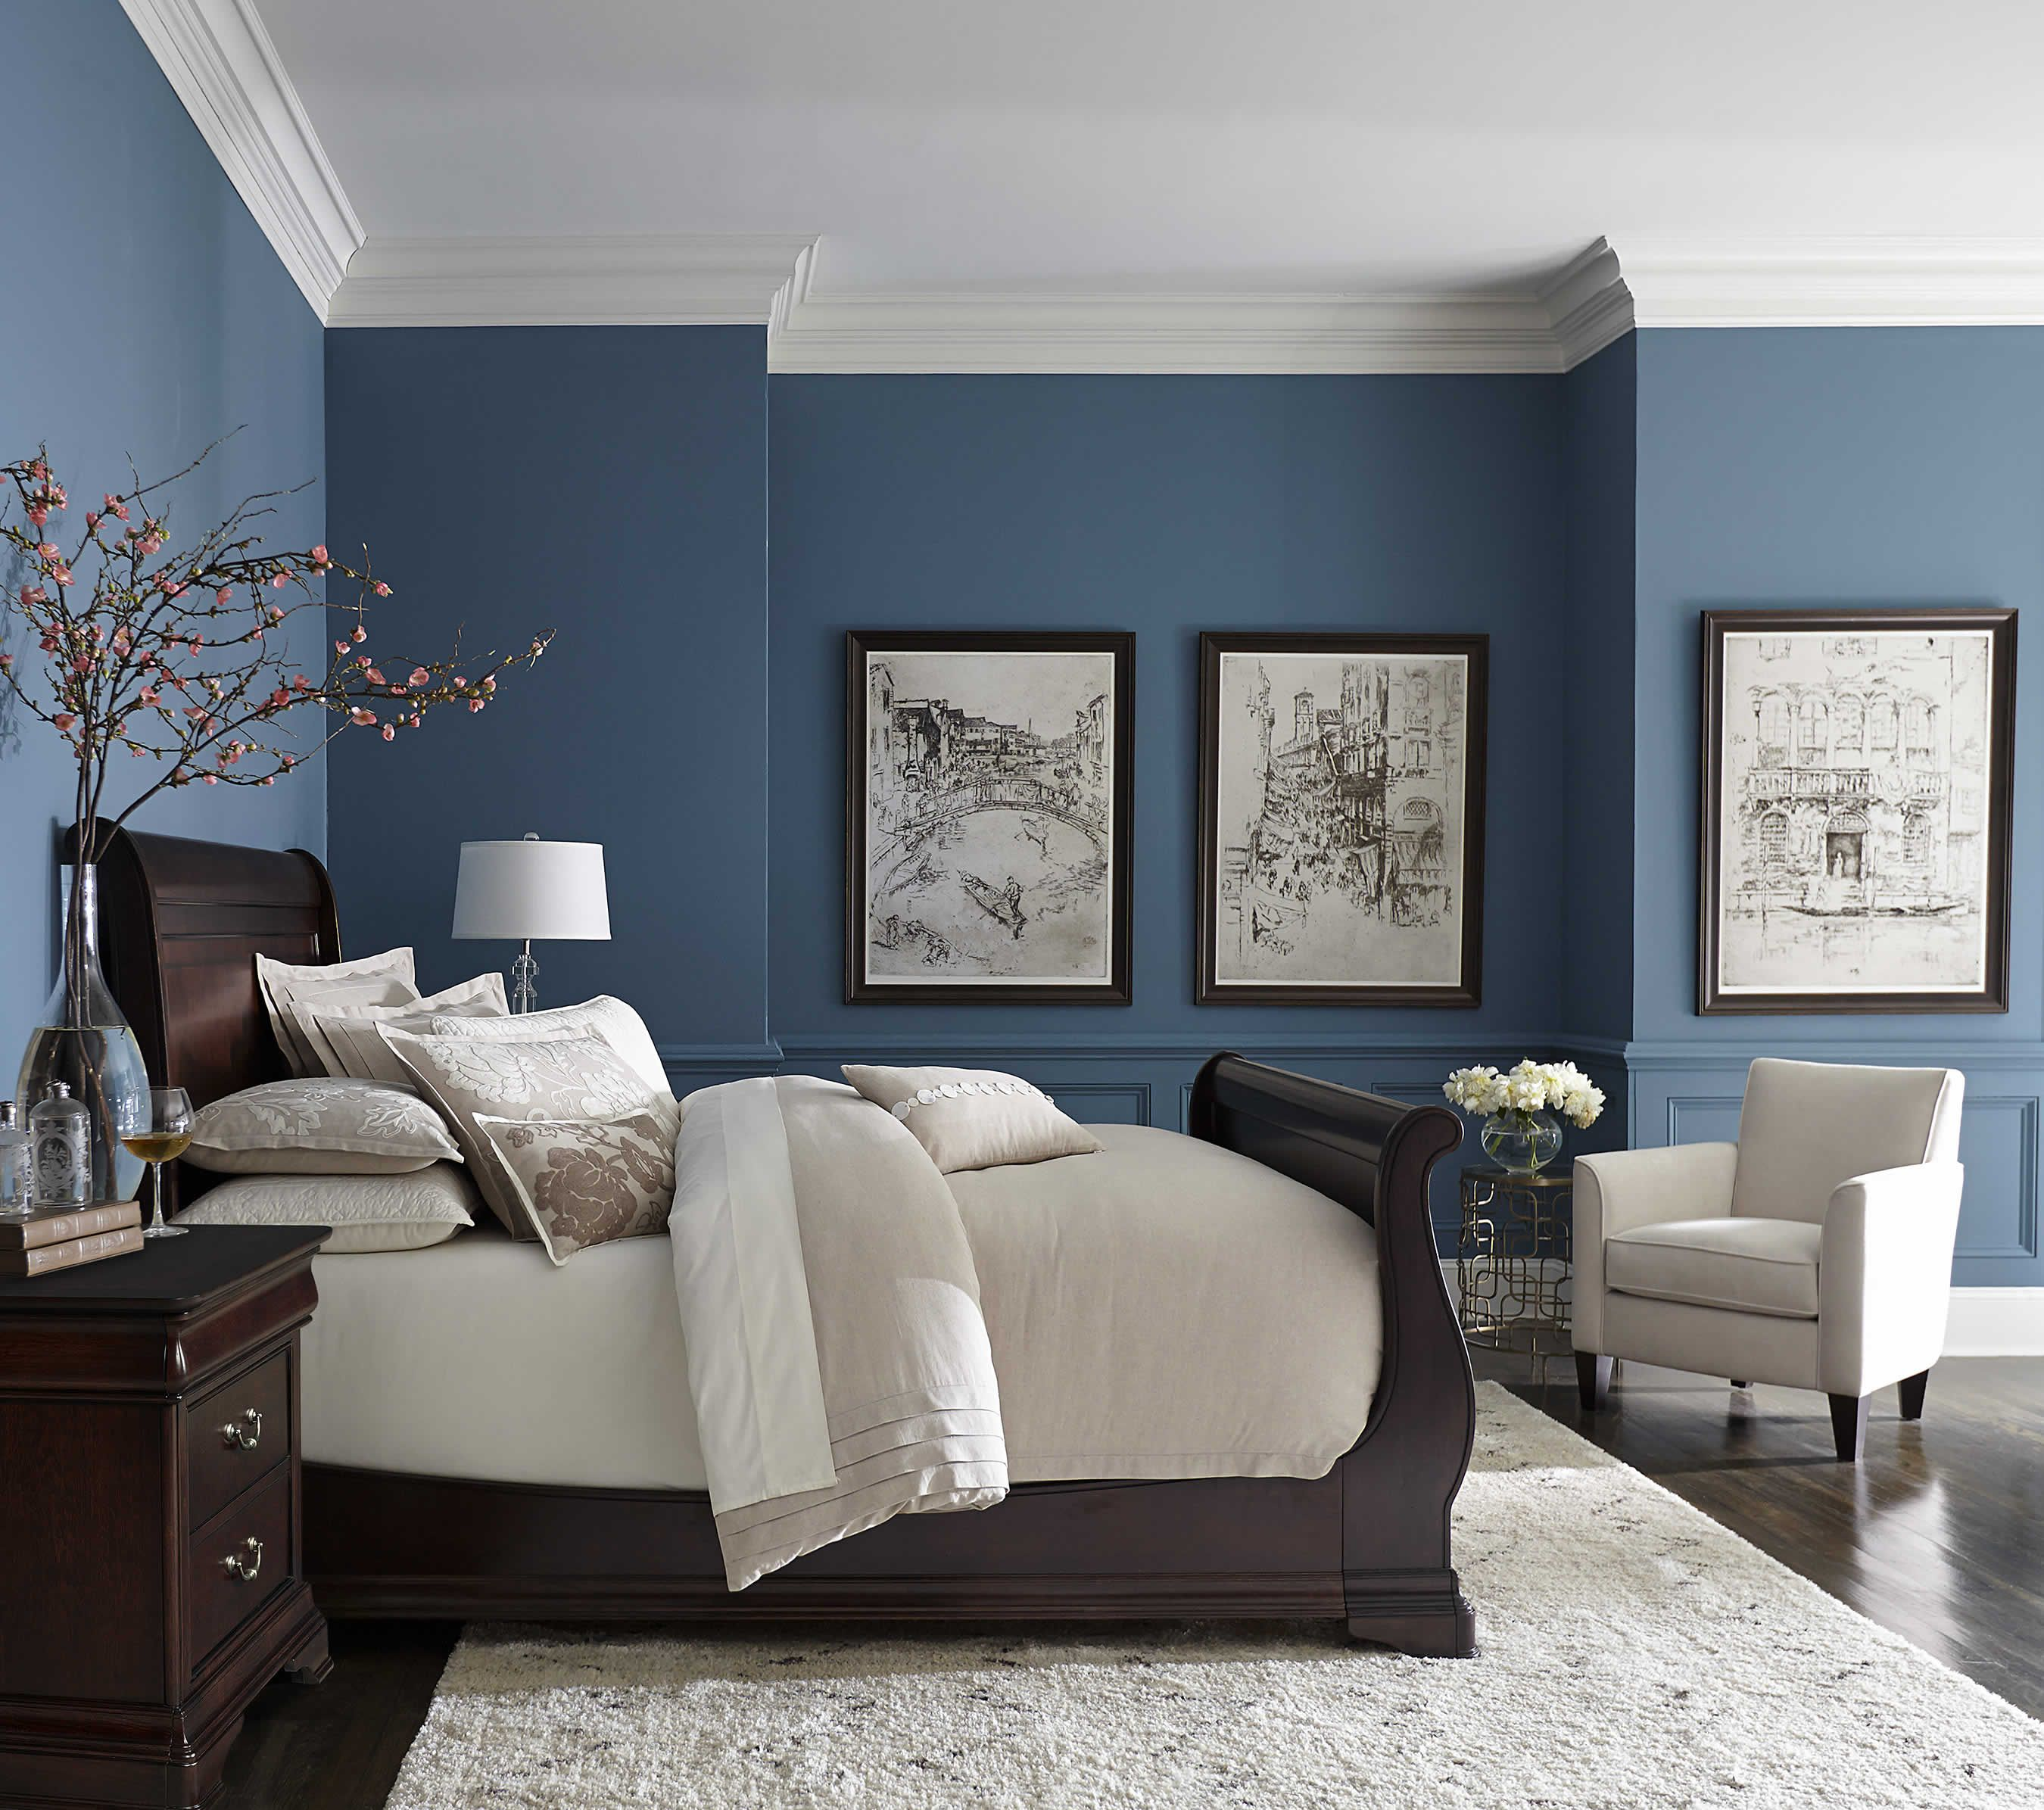 pretty blue color with white crown molding | Home in 2019 | Romantic ...